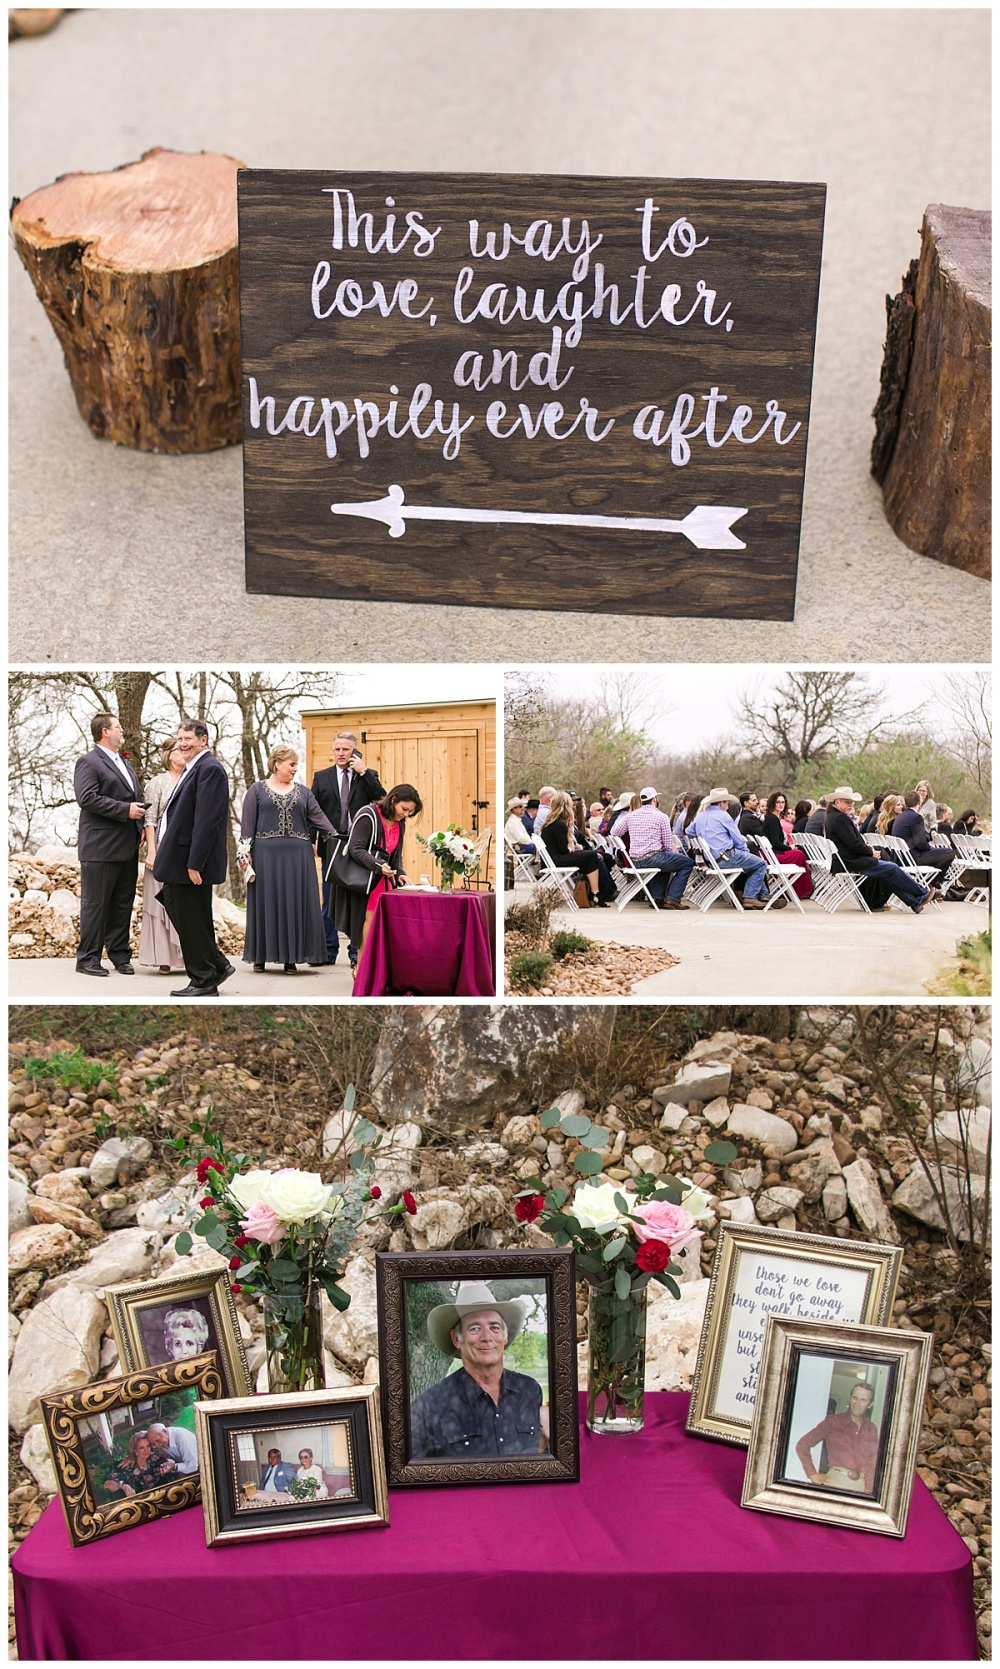 Carly-Barton-Photography-Geronimo-Oaks-Wedding-Venue-Texas-Hill-Country-Ronnie-Sarah_0089.jpg